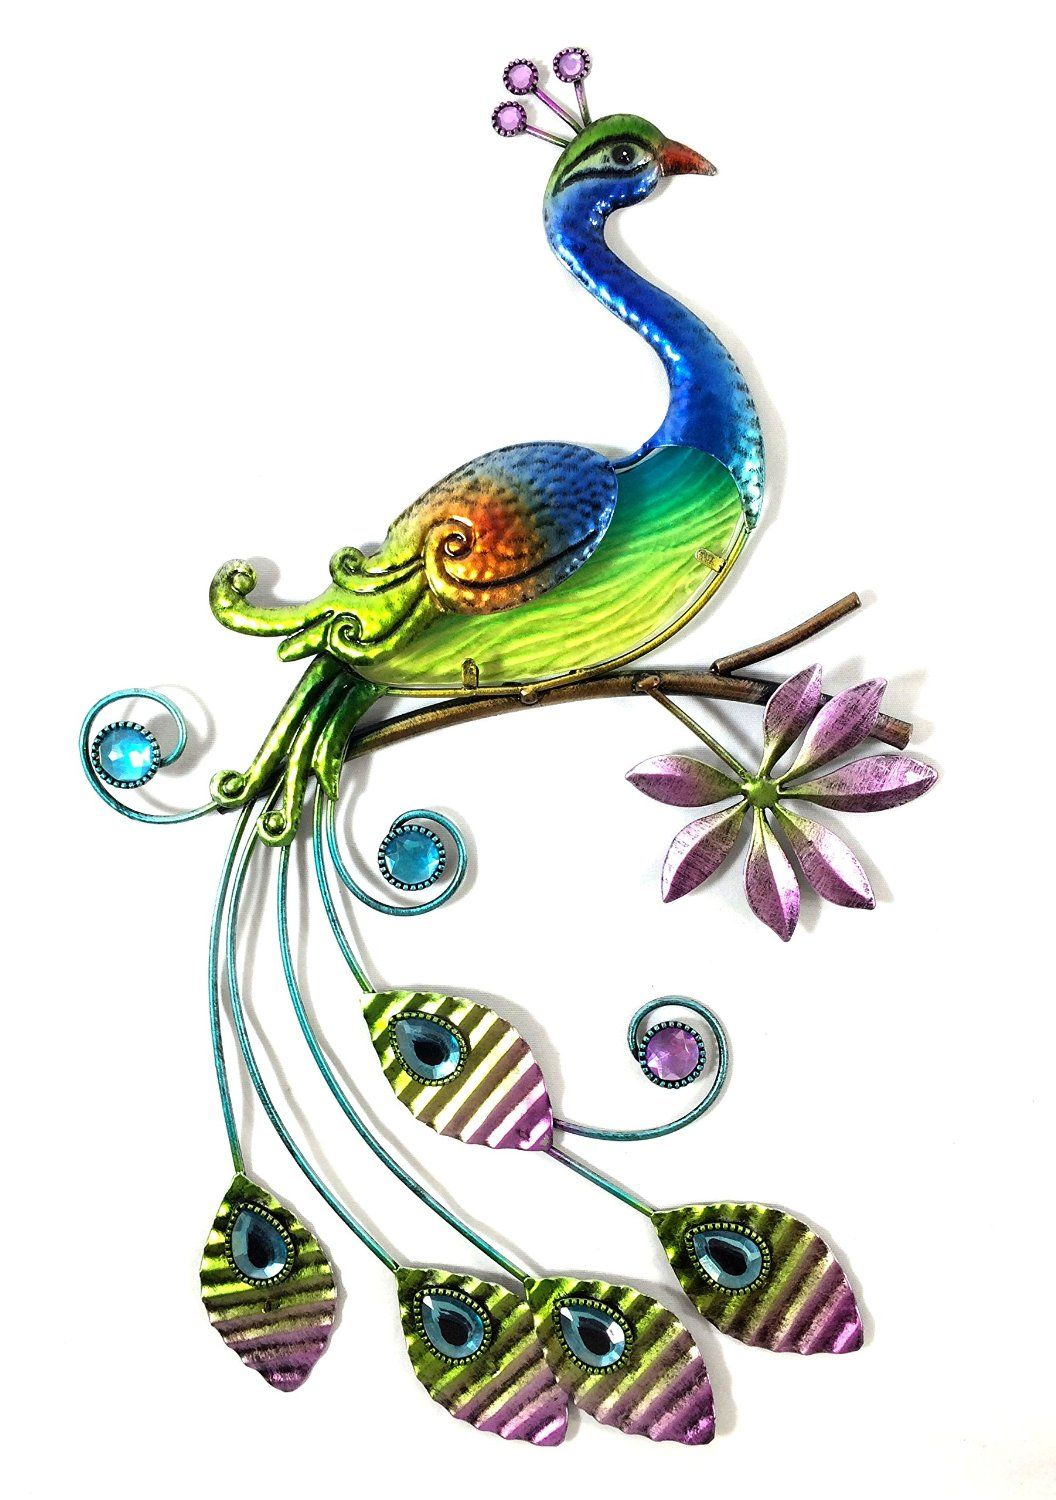 Peacock wall decor metal - Bejeweled Display Peacock W Glass Wall Art Plaque And Home Decor More